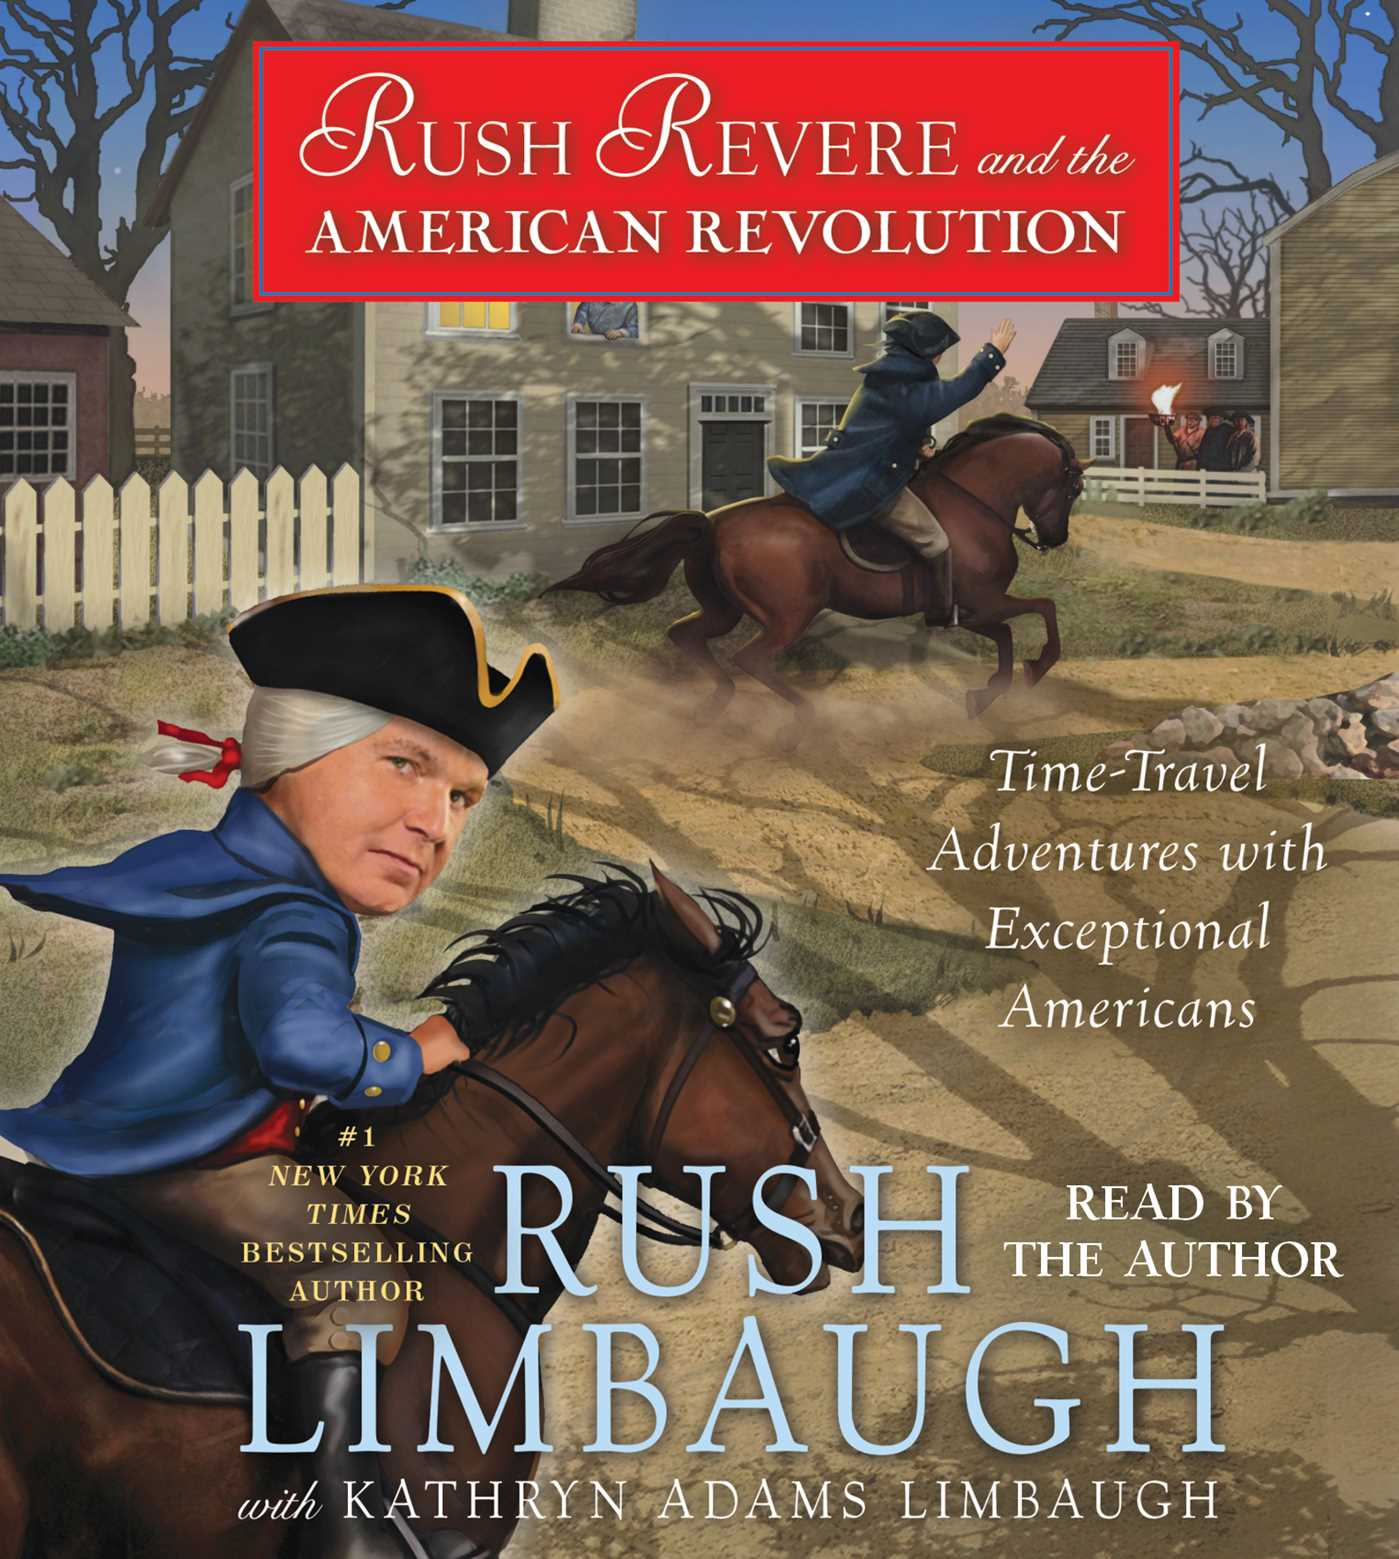 Rush-revere-and-the-american-revolution-9781442378186_hr